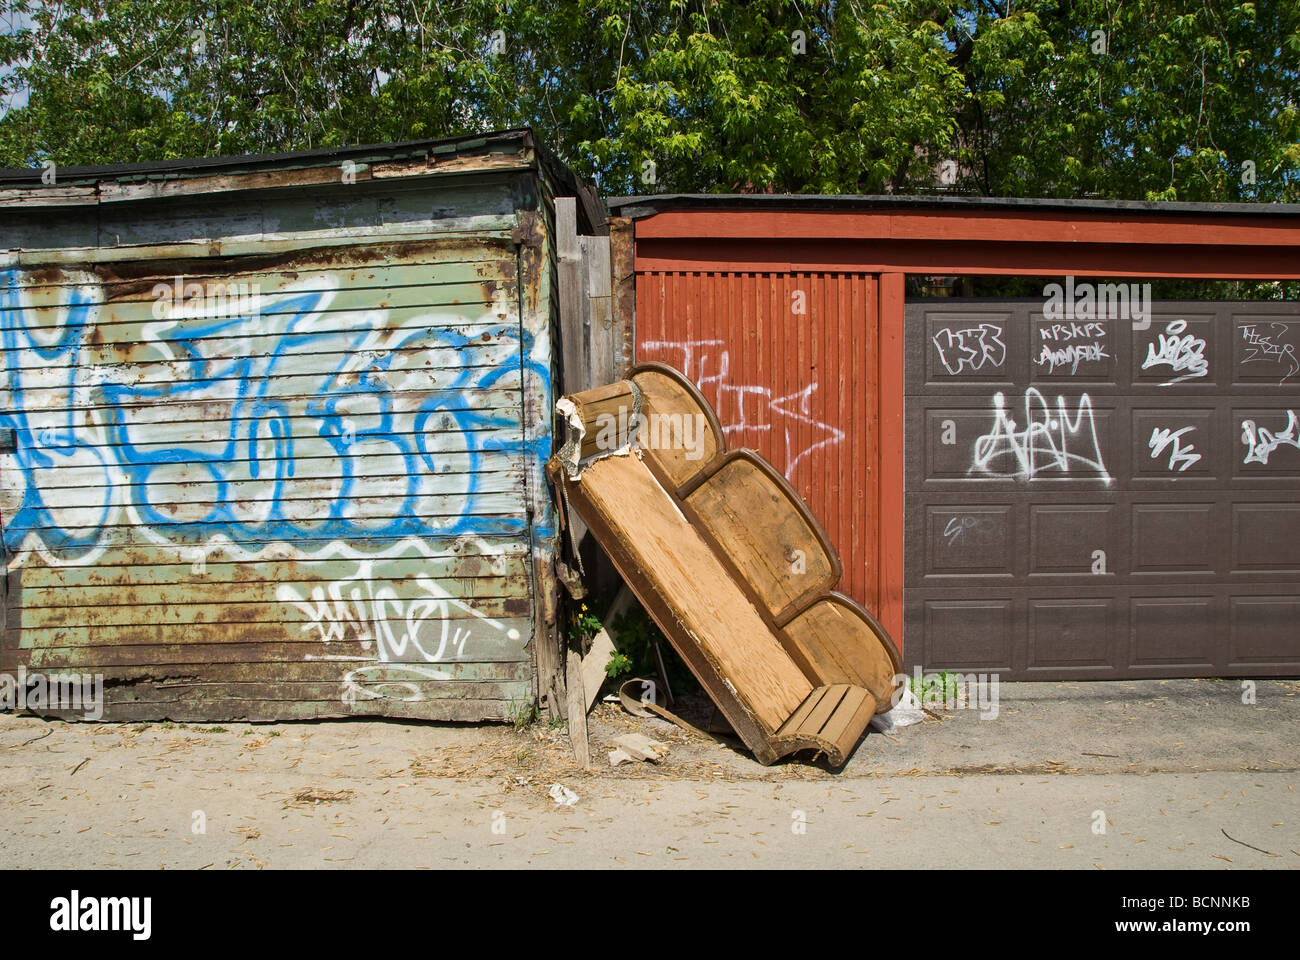 Ruined sofa in grafitti-covered alleyway. - Stock Image